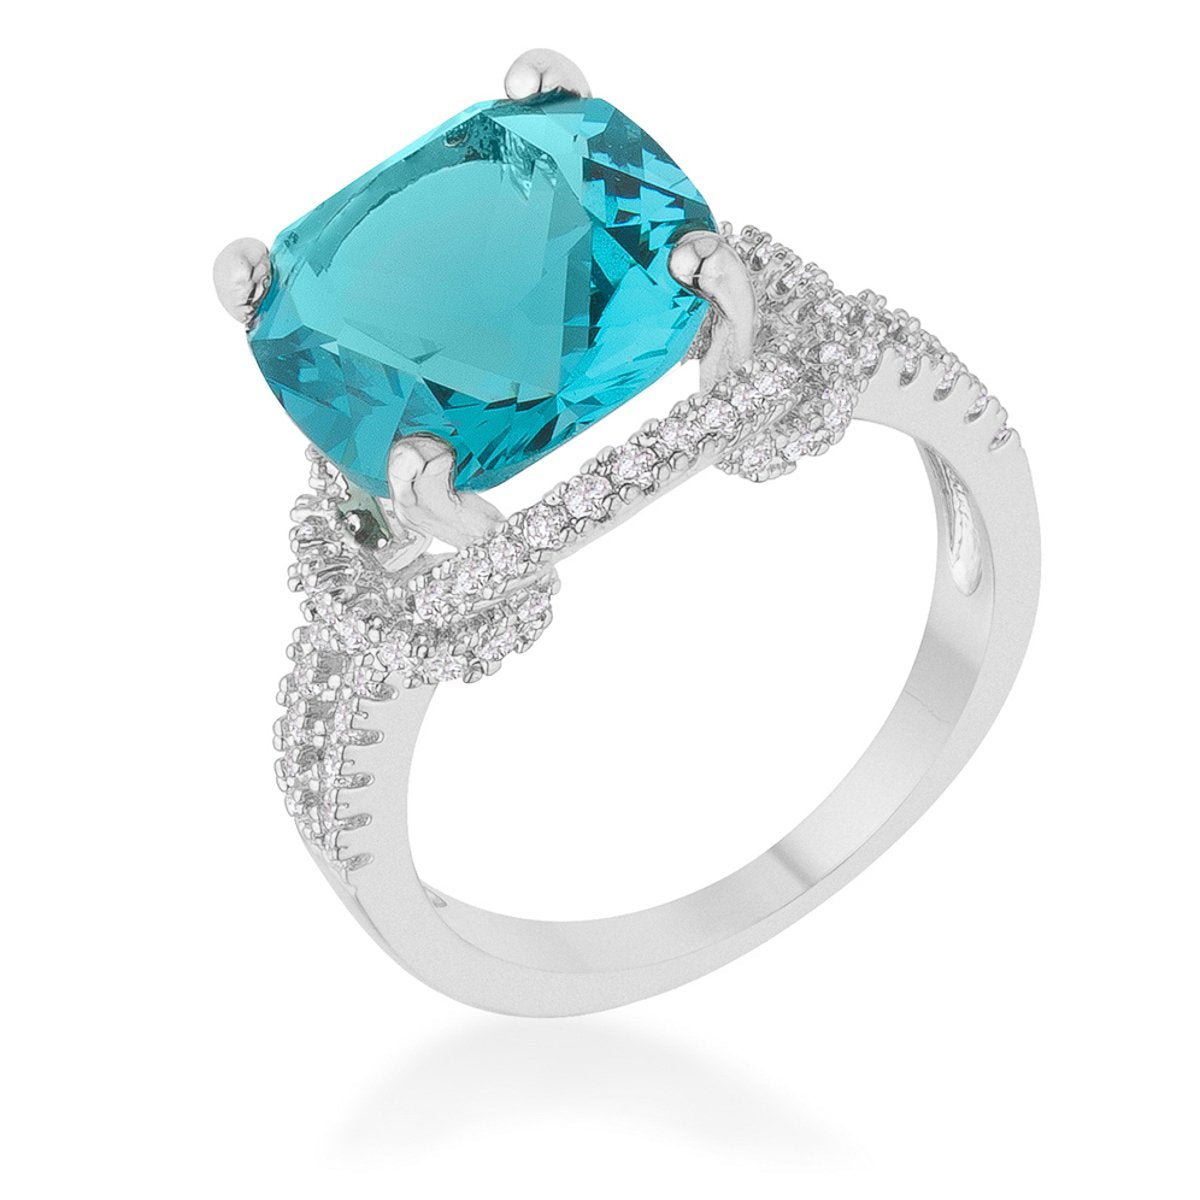 Charlene 6.2ct Aqua CZ Rhodium Classic Statement Ring - R08465R-C32